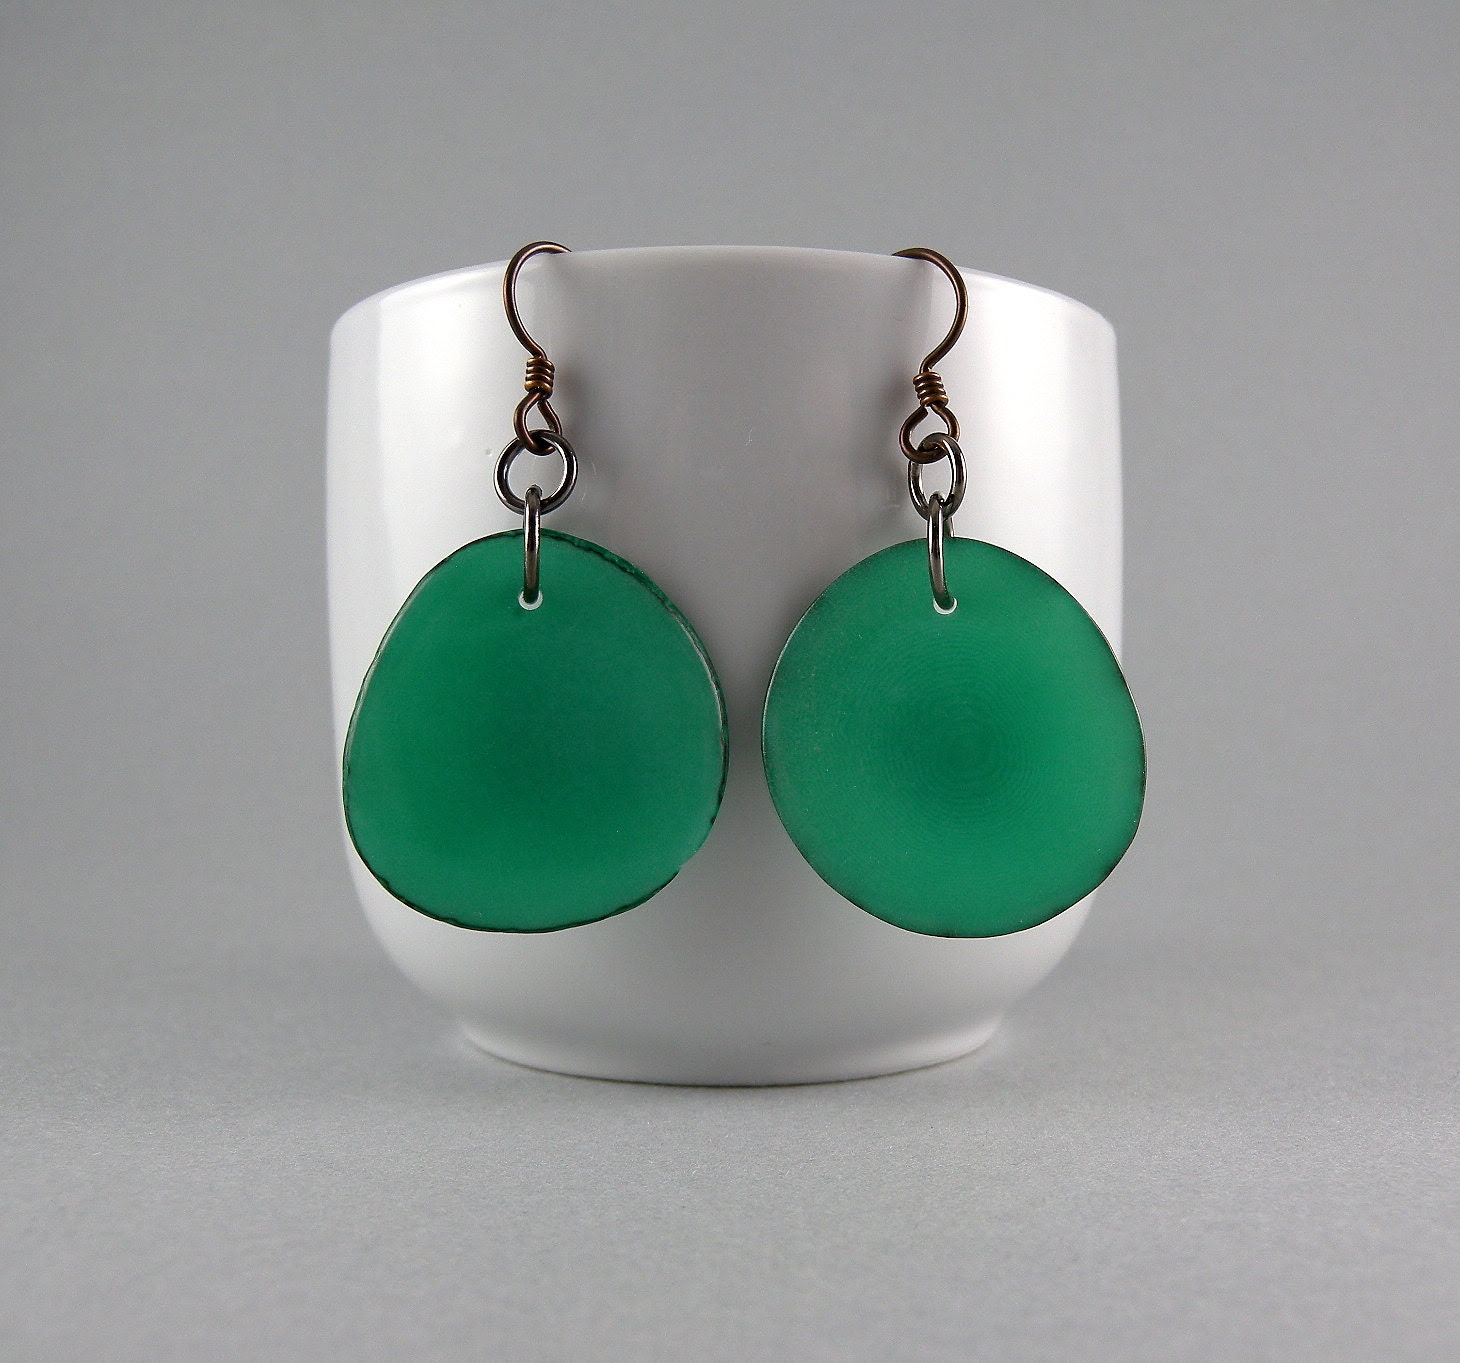 Teal Tagua Nut Eco Friendly Earrings with Free Shipping